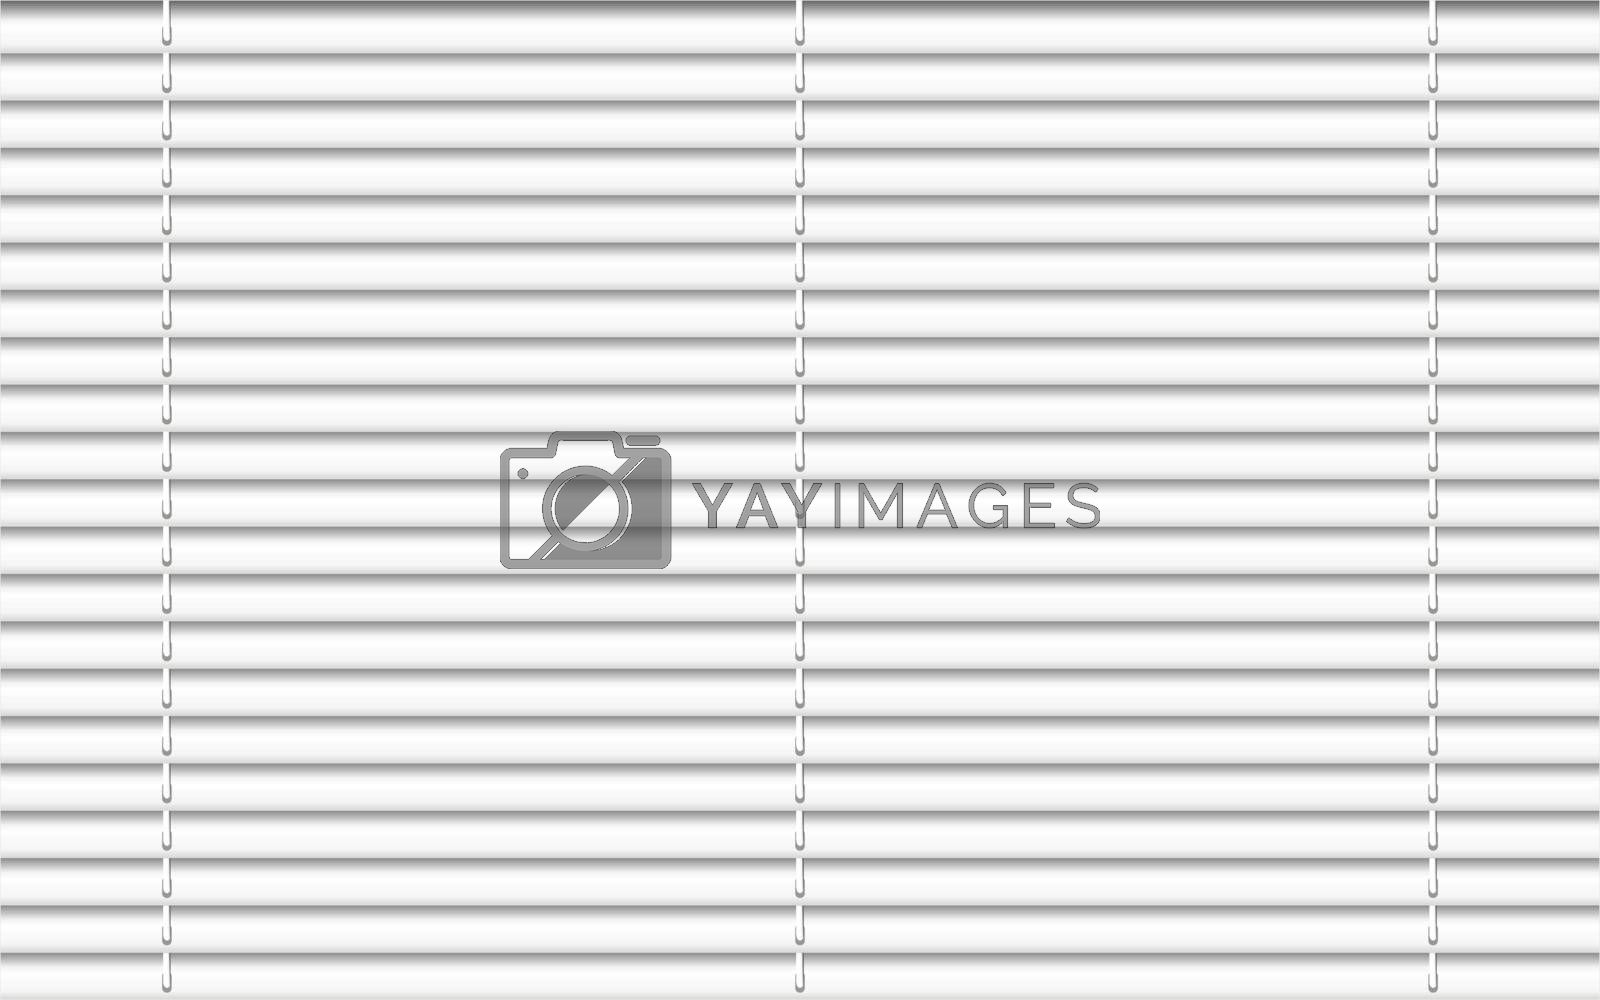 Horizontal window blind. White office interior blackout shade. Window shutter decor. Home interior design. Vector illustration. Background realistic window sunlight blinds closed. Office accessories blinds horizontal